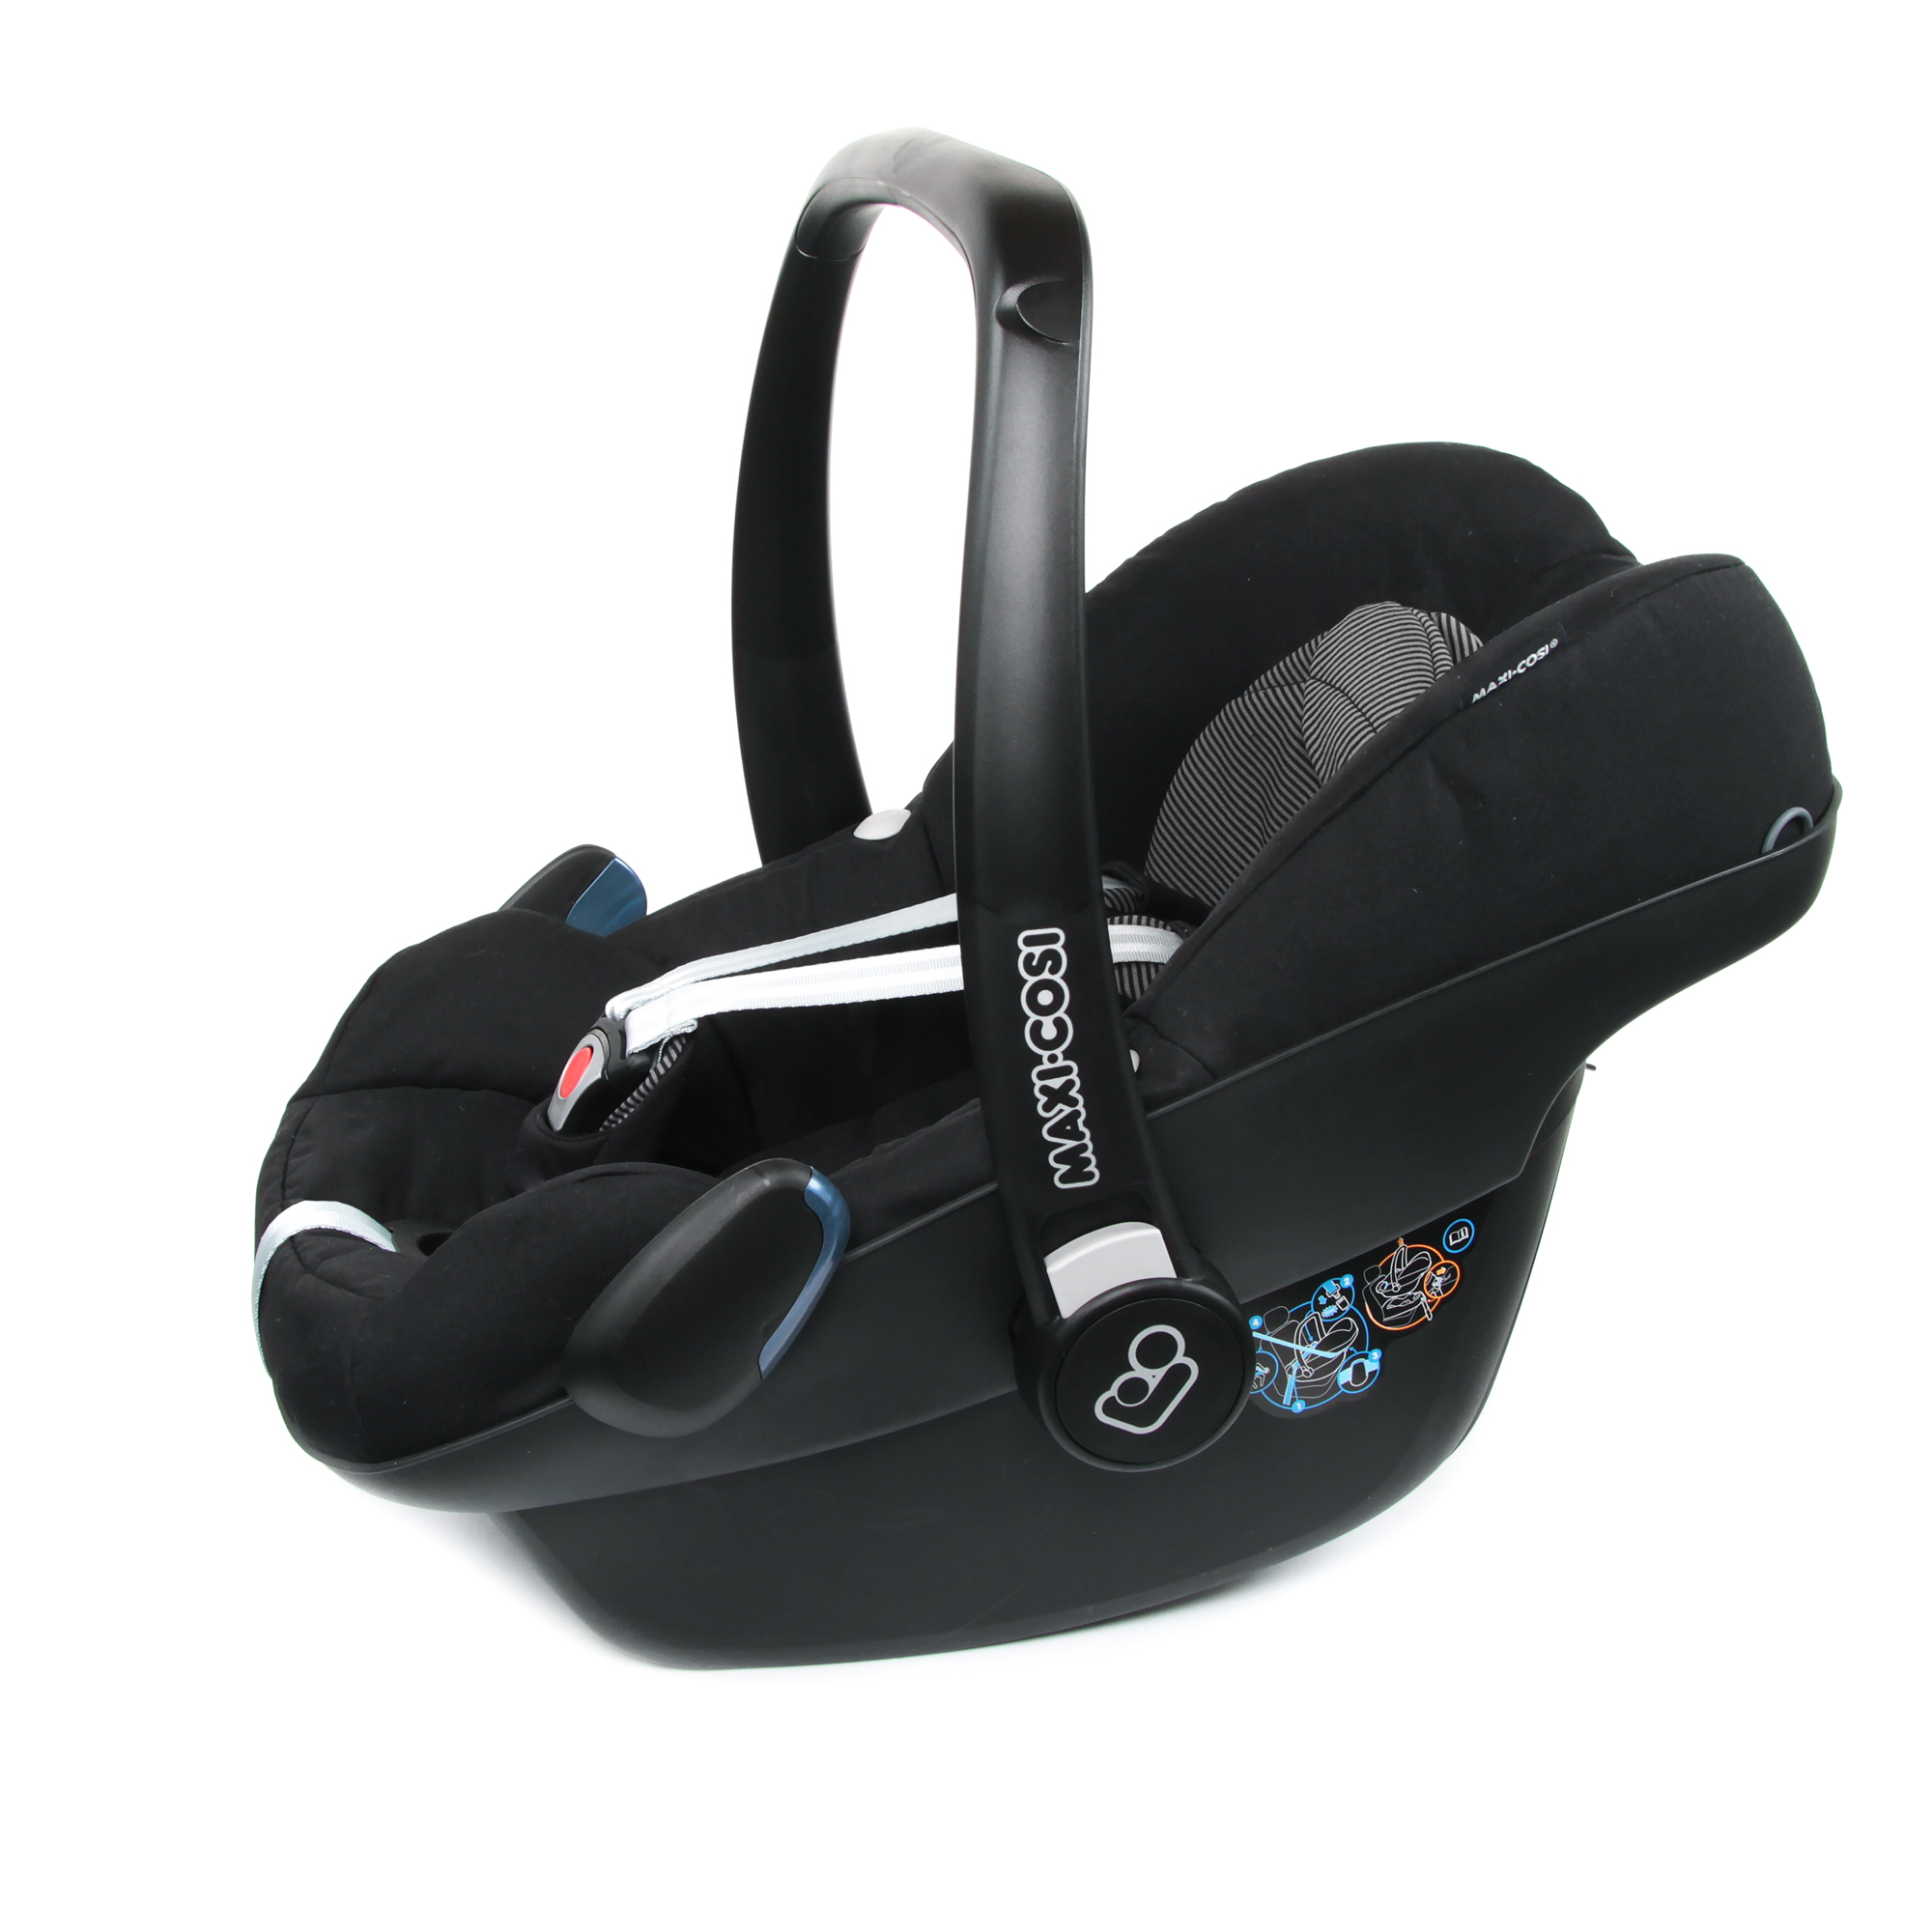 maxi cosi infant car seat pebble 2018 black raven buy at. Black Bedroom Furniture Sets. Home Design Ideas